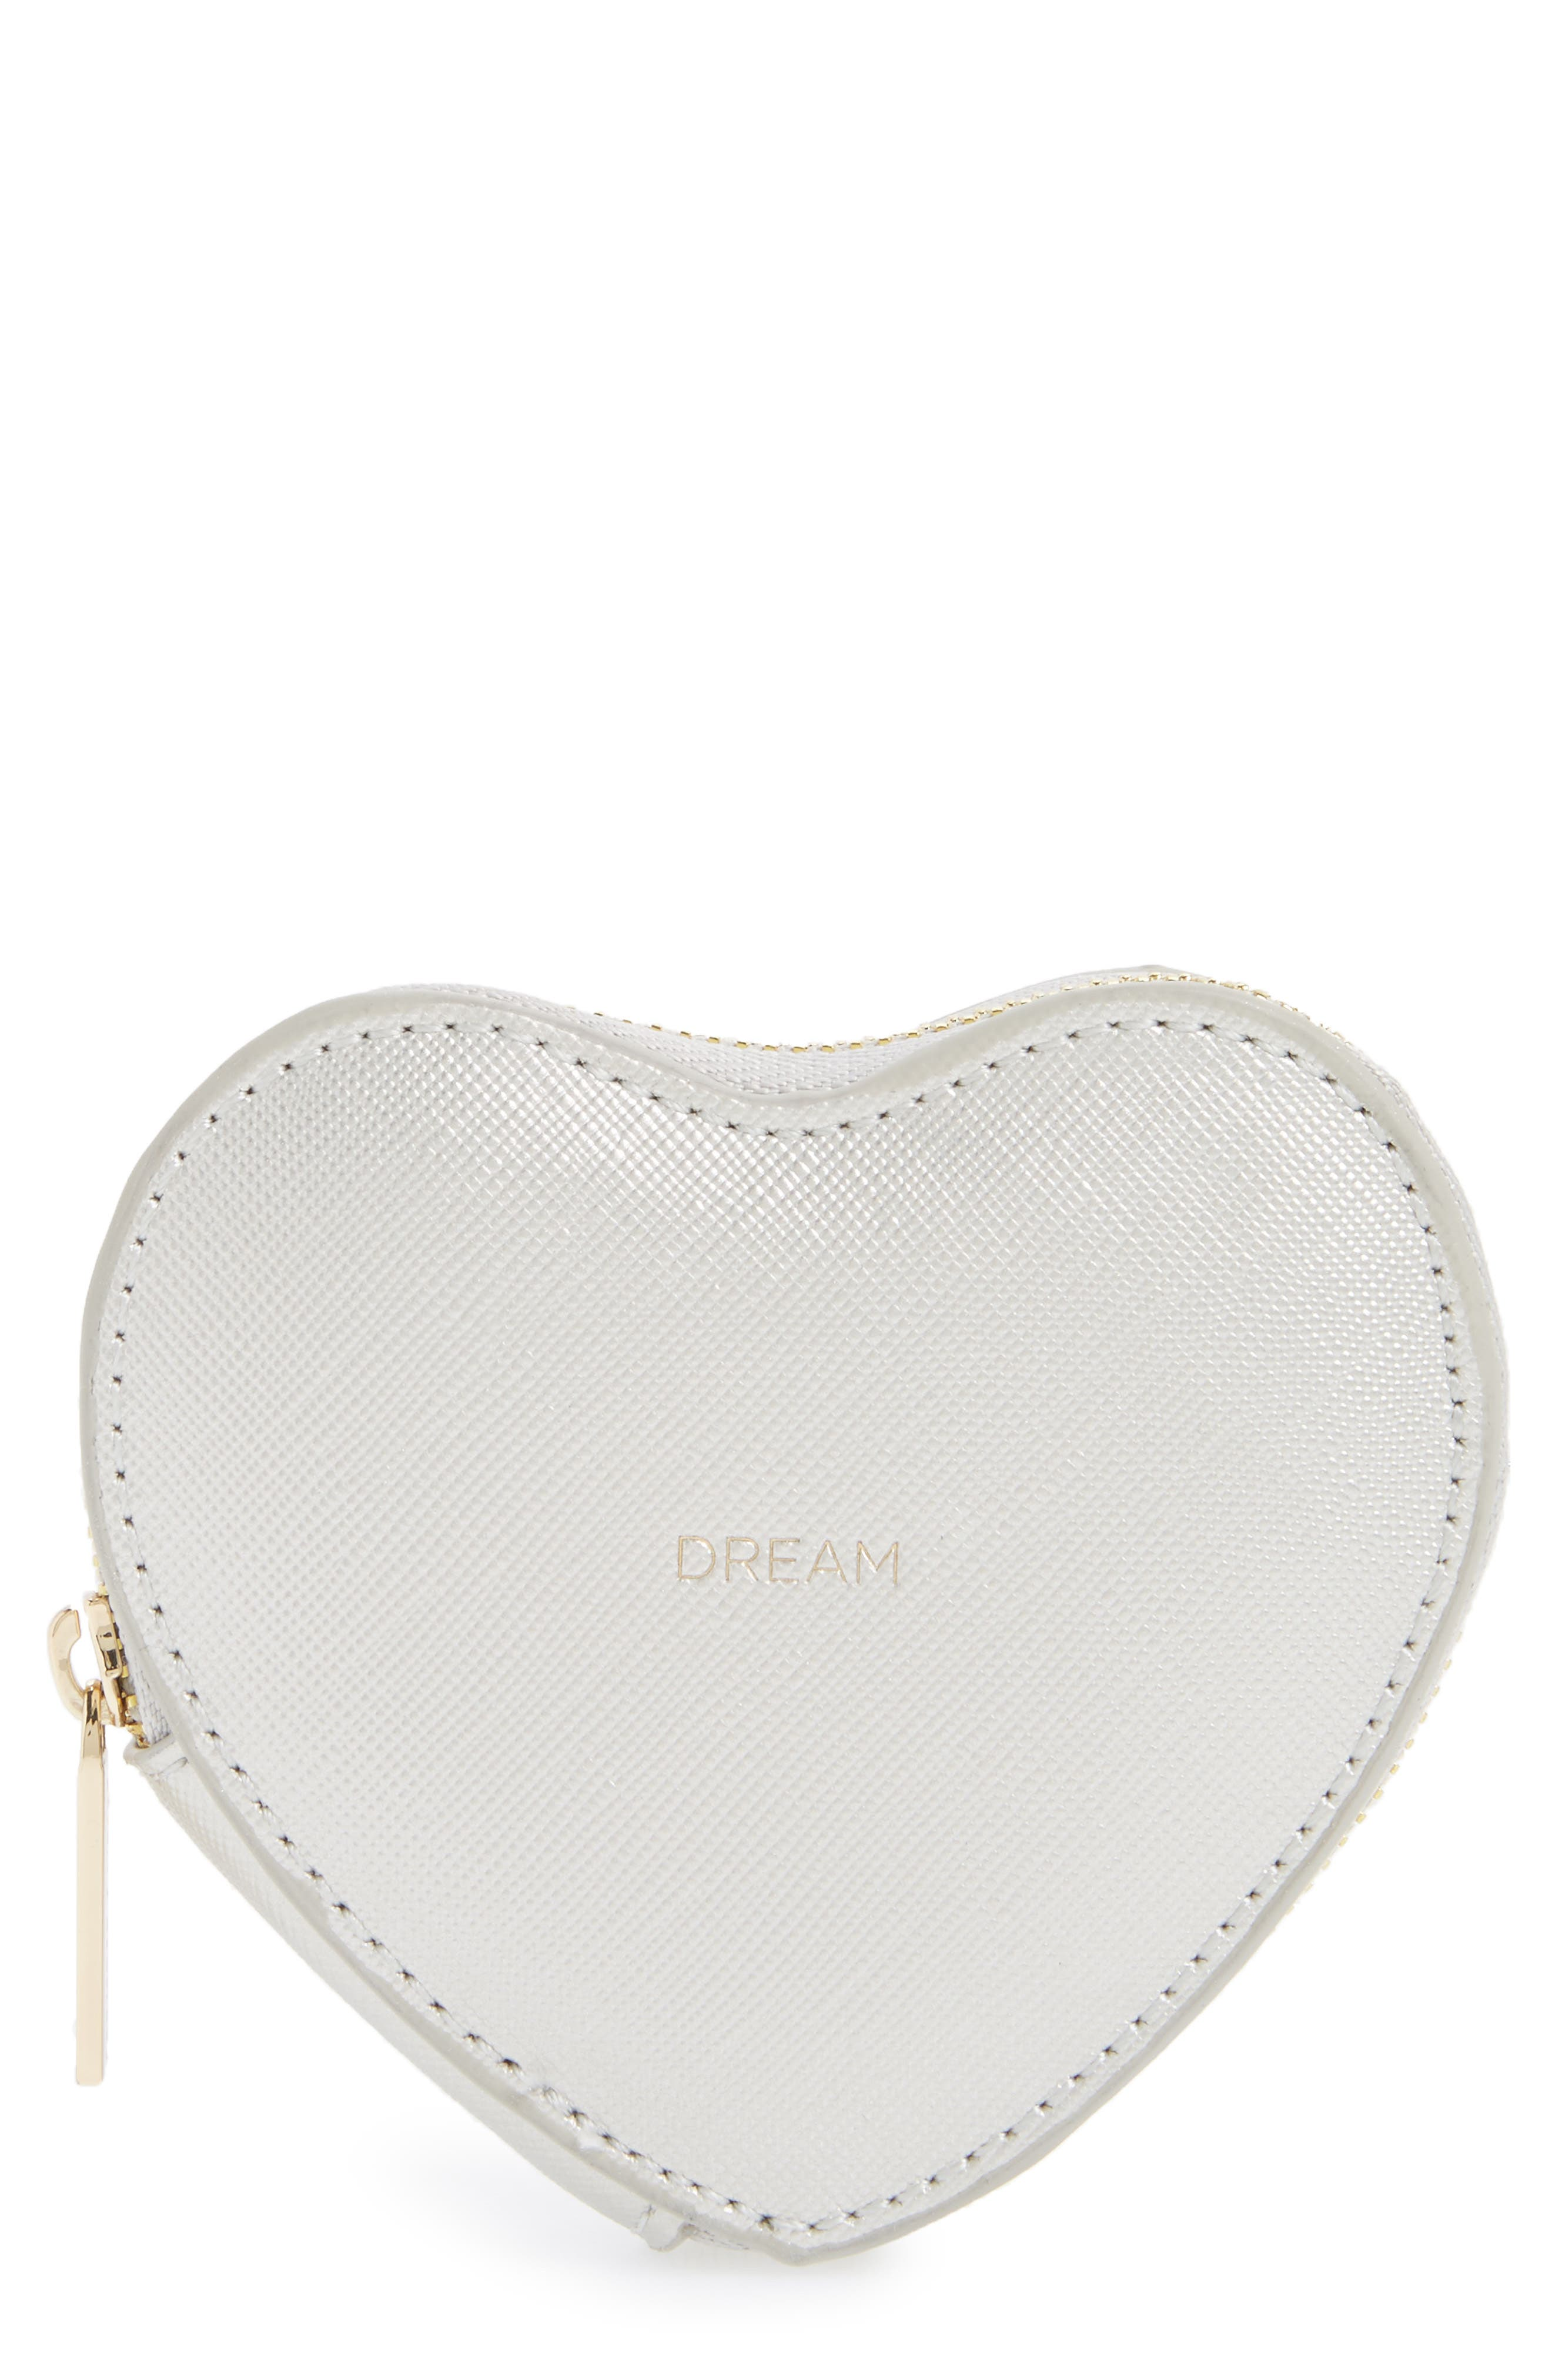 Heart Dream Faux Leather Coin Purse,                         Main,                         color, Silver